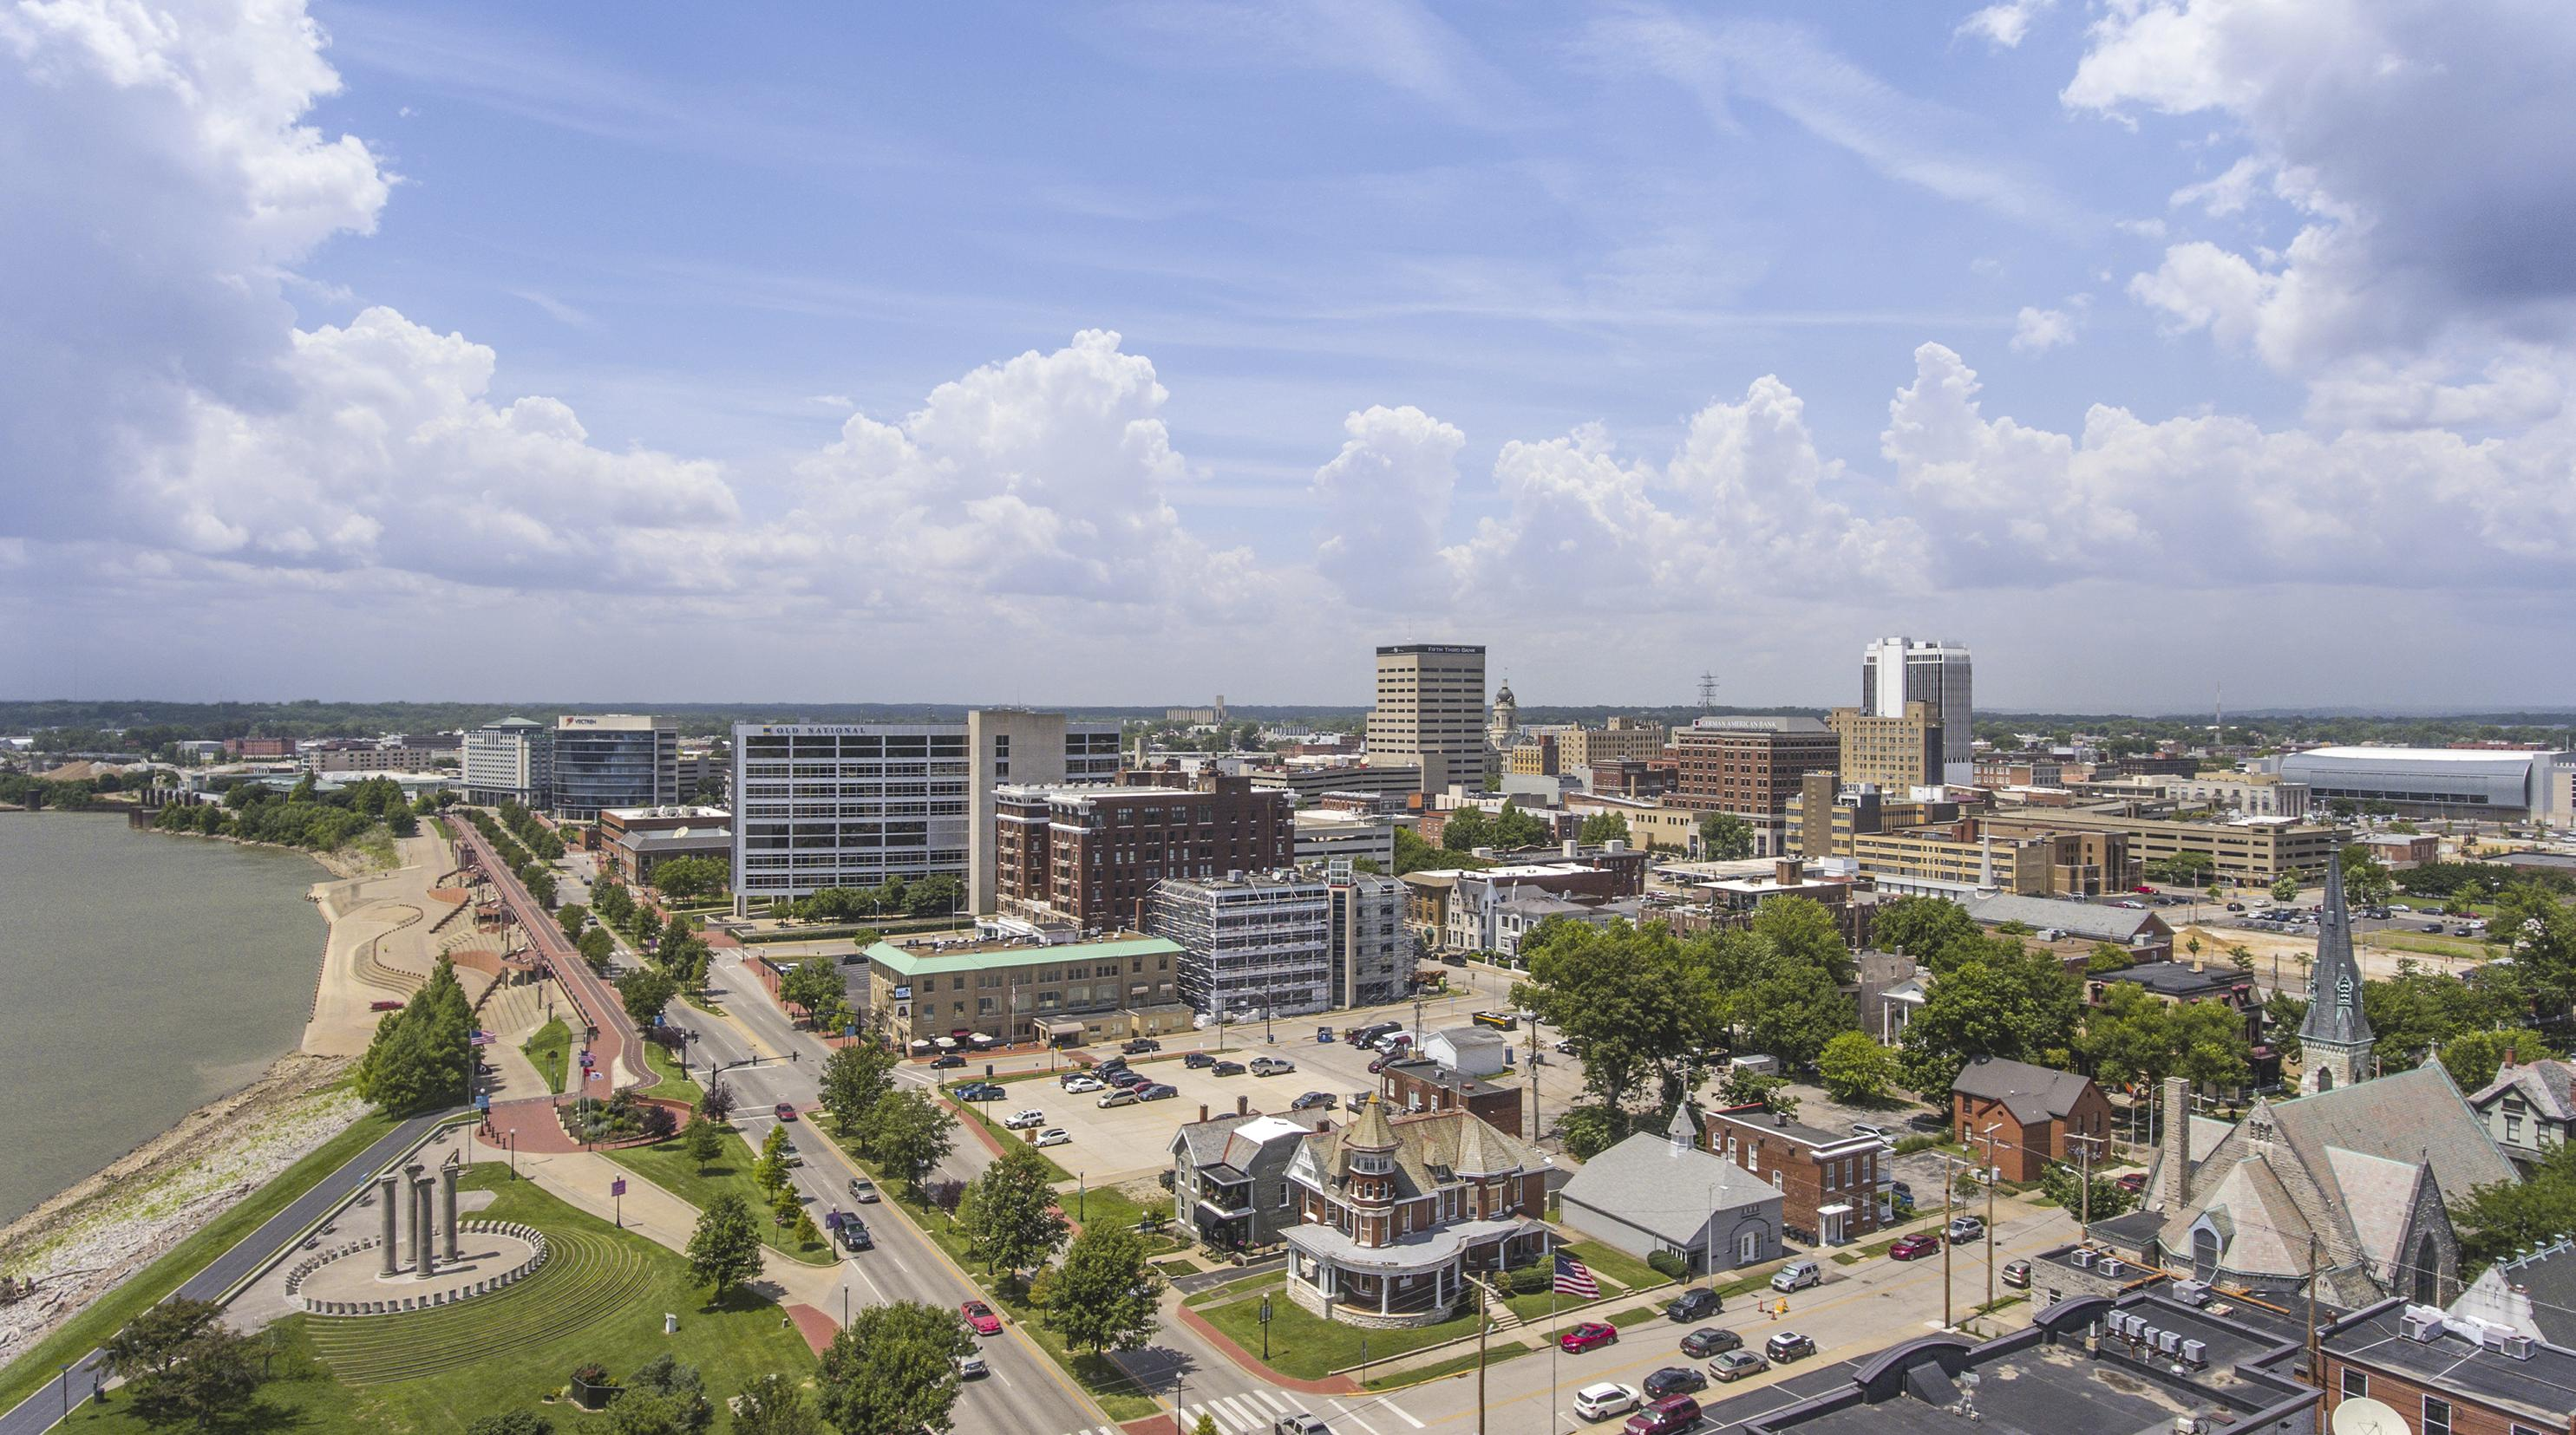 e is for everyone - Evansville Indiana - Downtown - Aerial - Alex Morgan Imaging - Copy